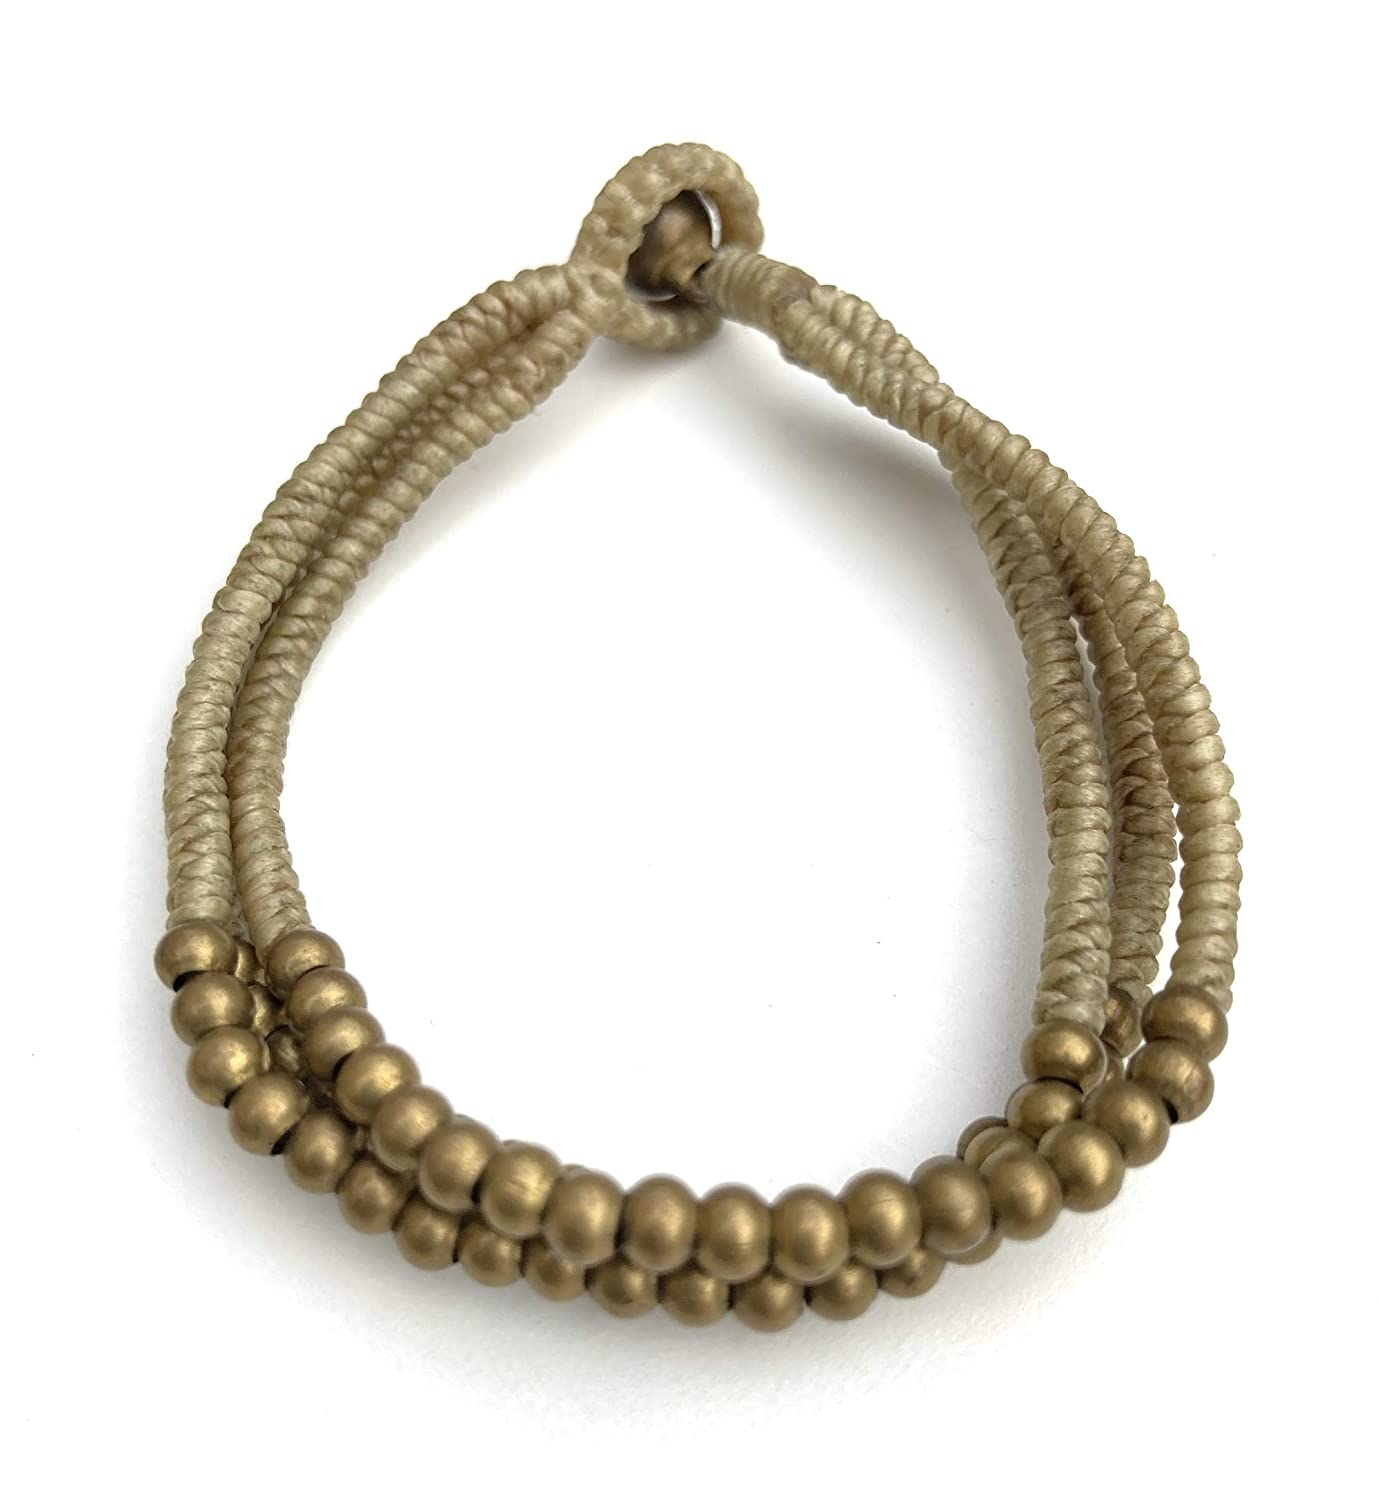 Tan Woven Wax Cord Brass Hippie Beautiful Bohe Bracelet Animer and price revision Super special price Handmade